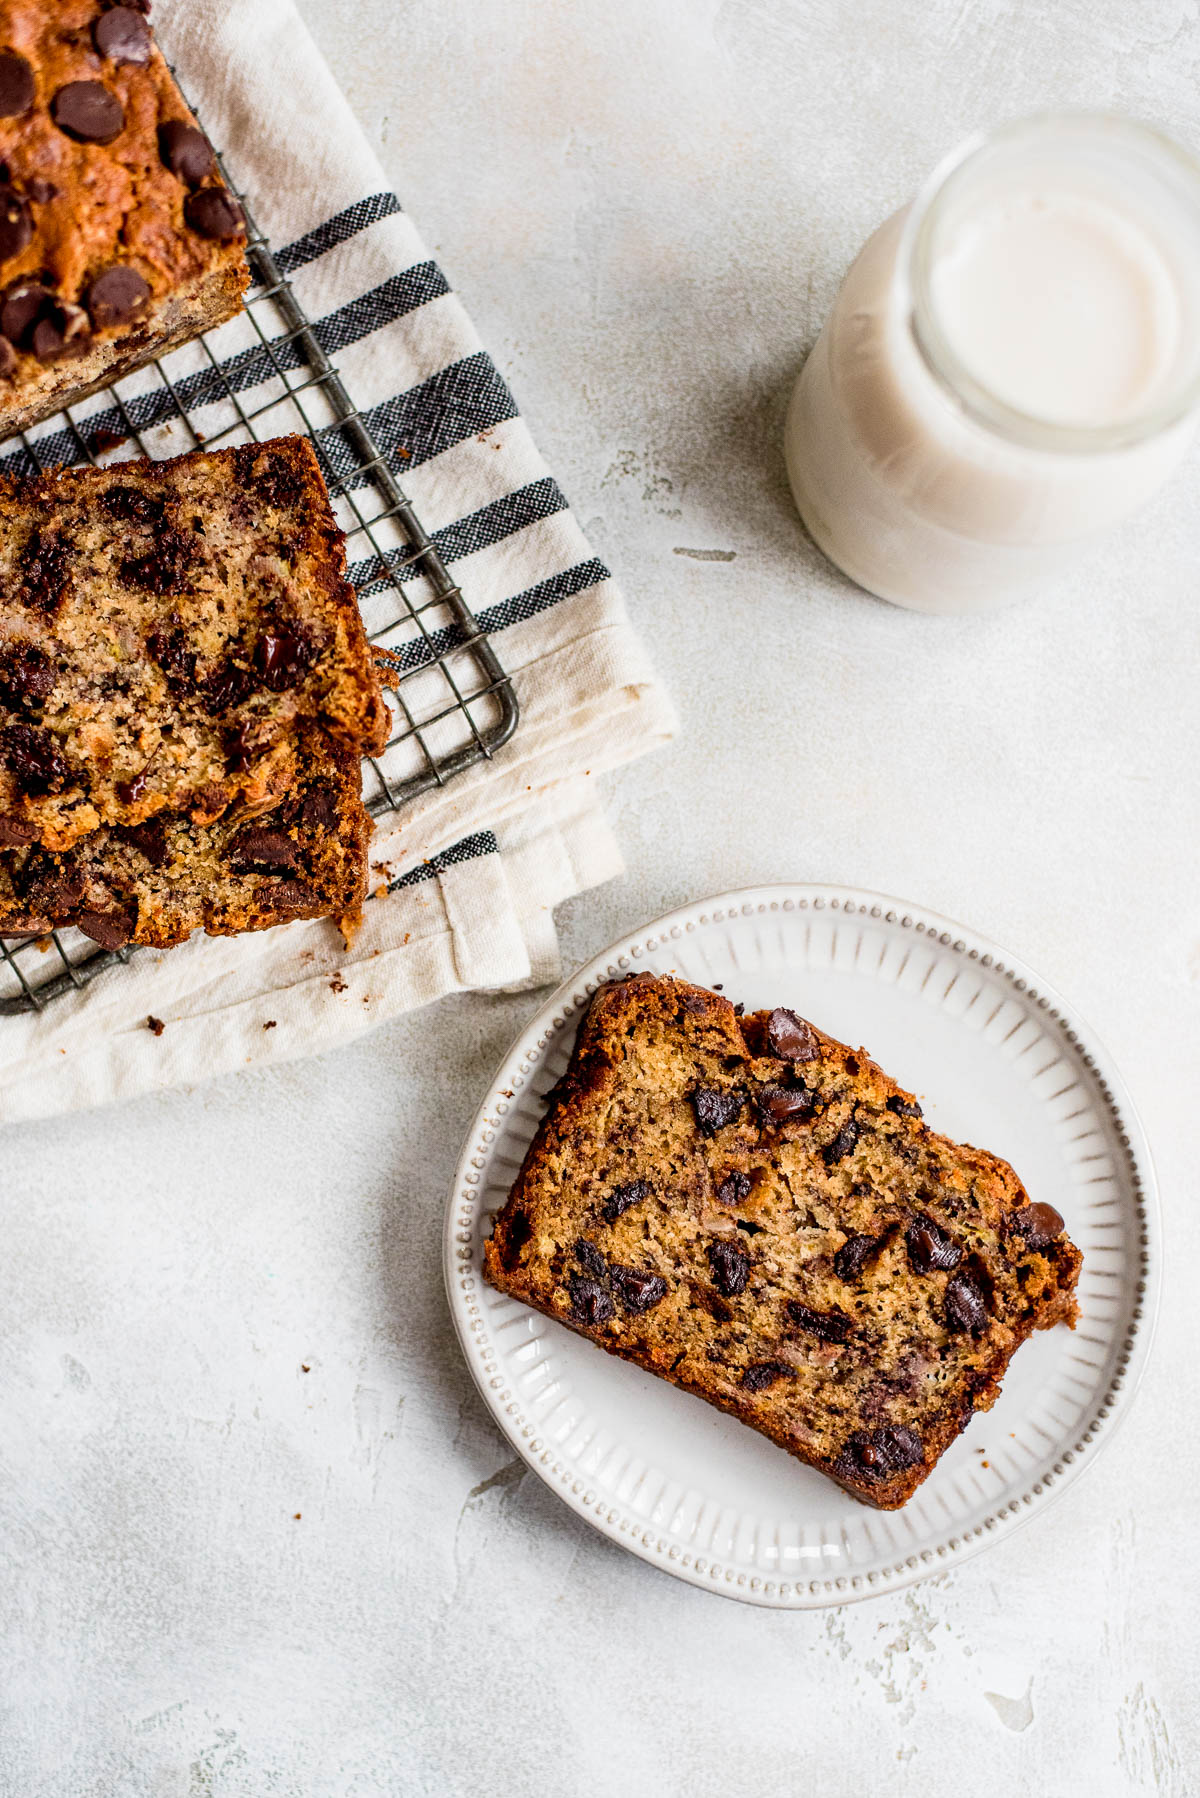 plate of banana bread with chocolate chips